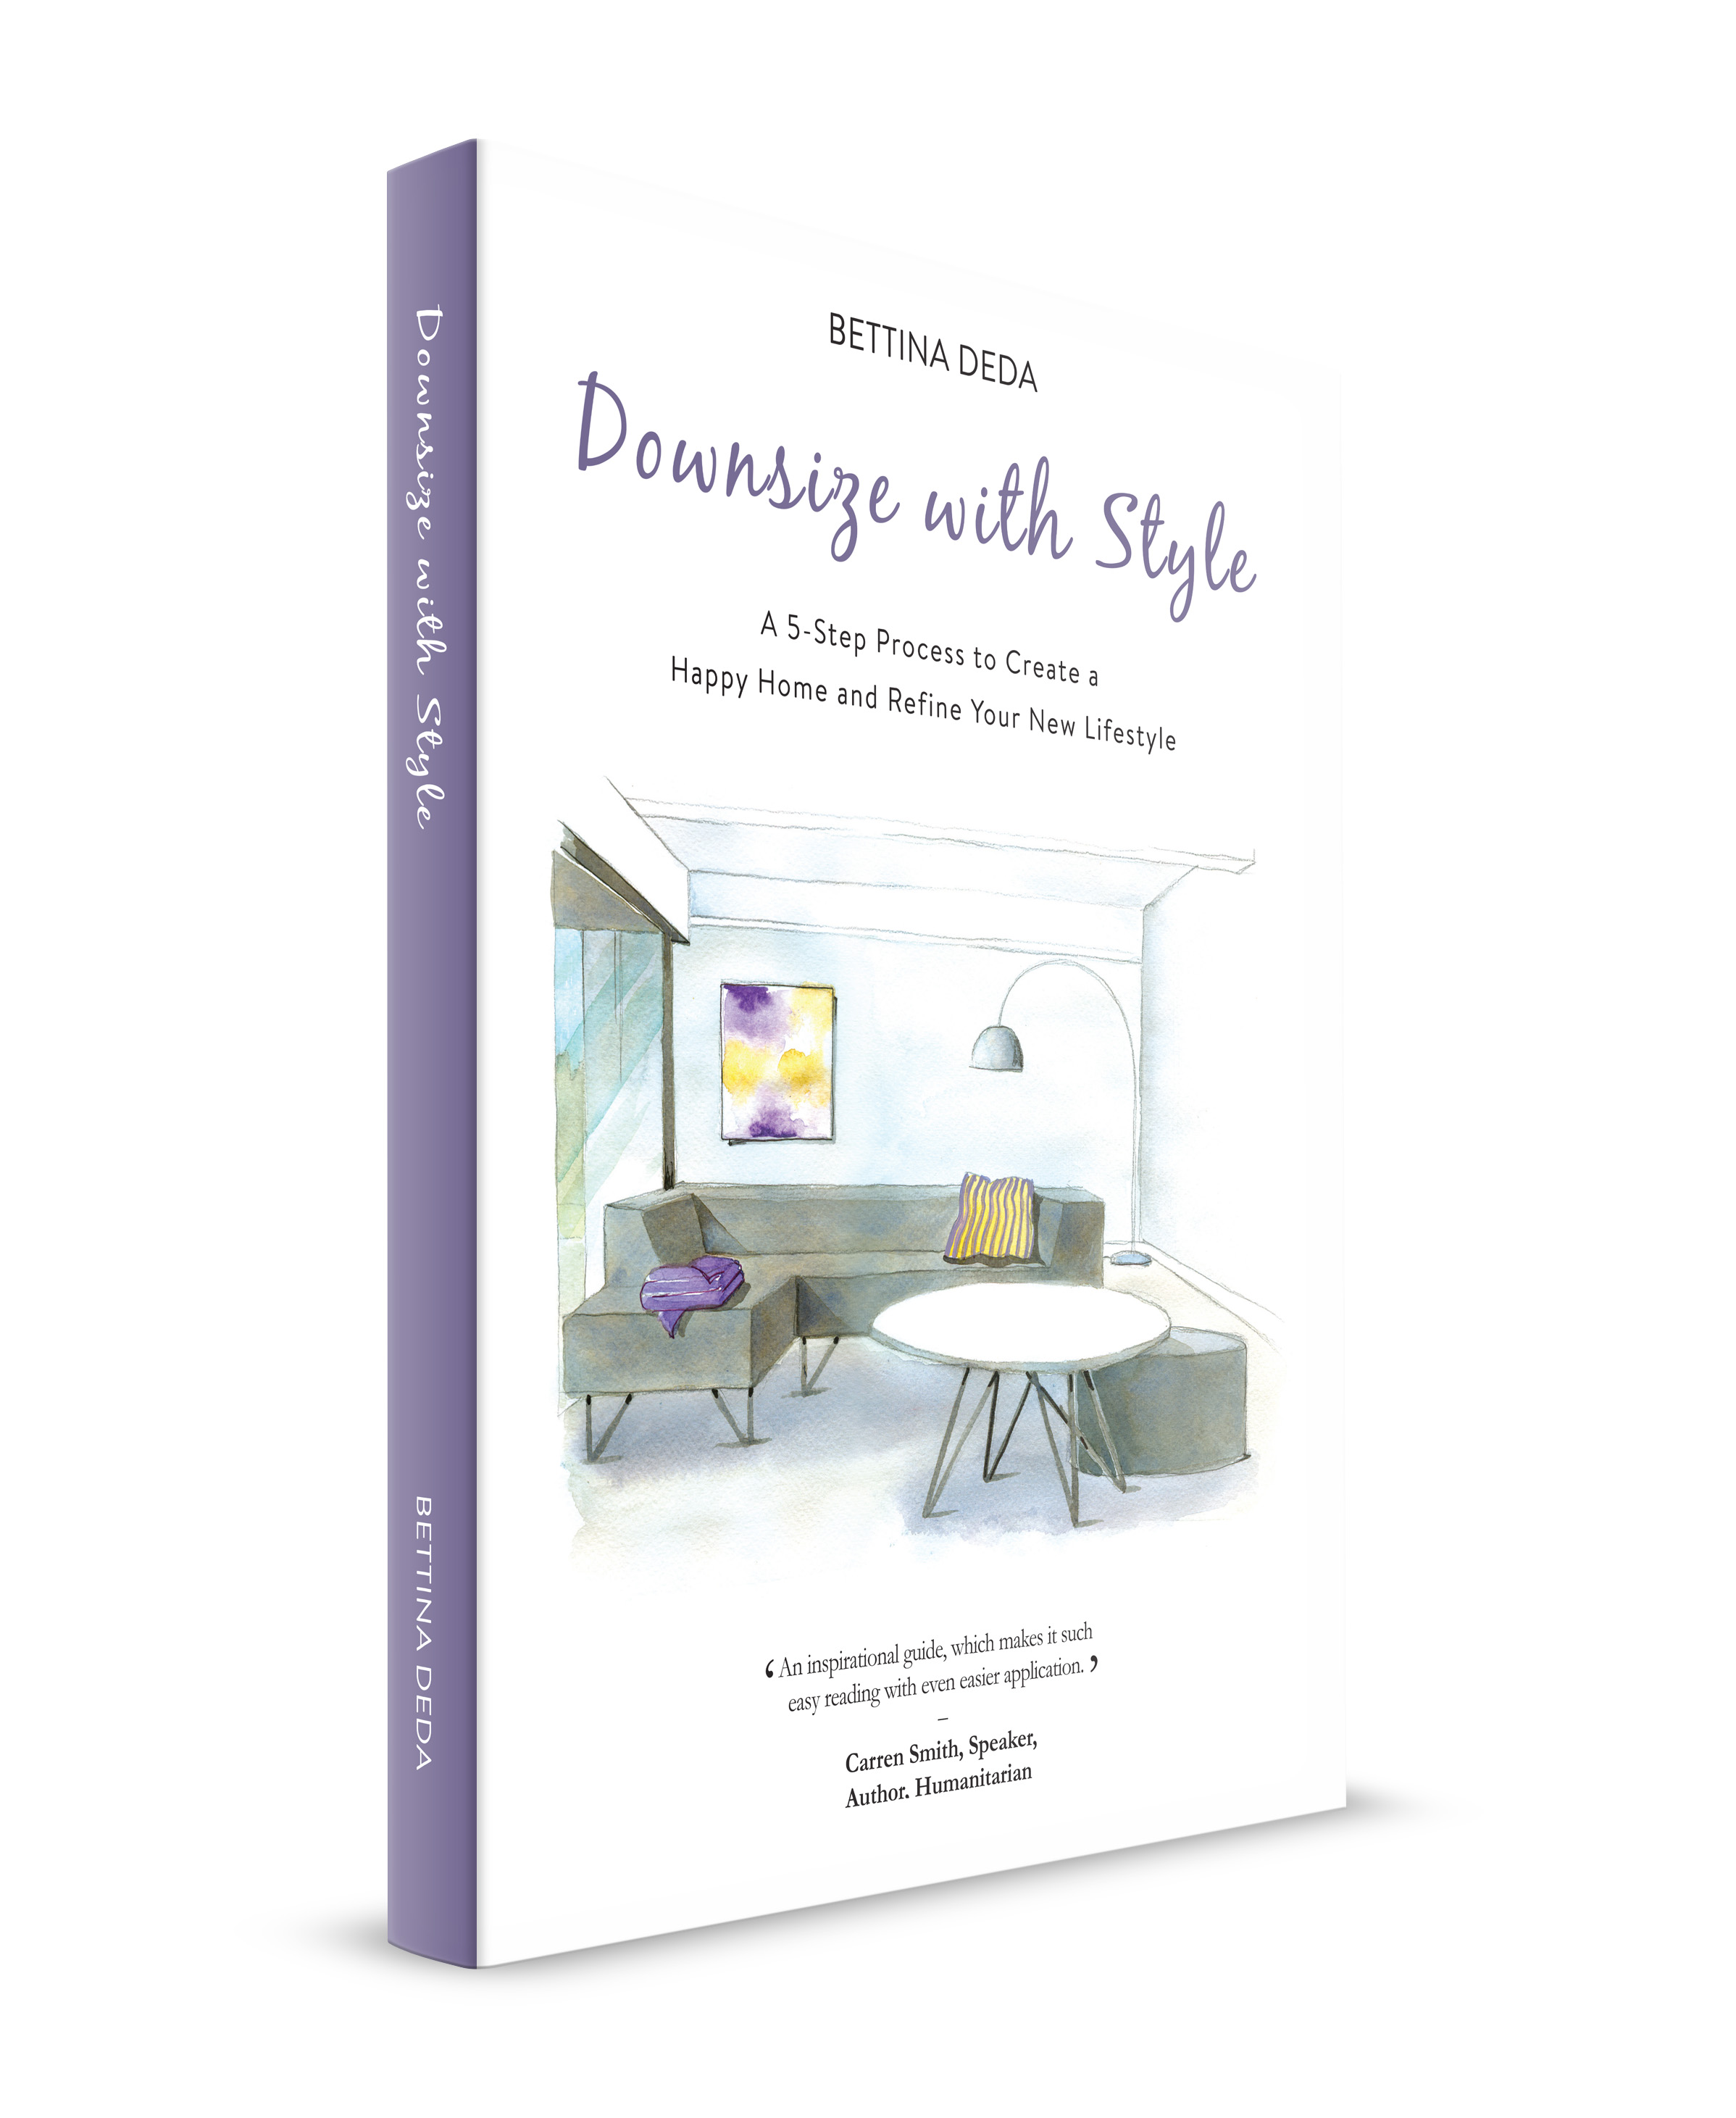 downsize-with-style-bettina-deda-decluttering